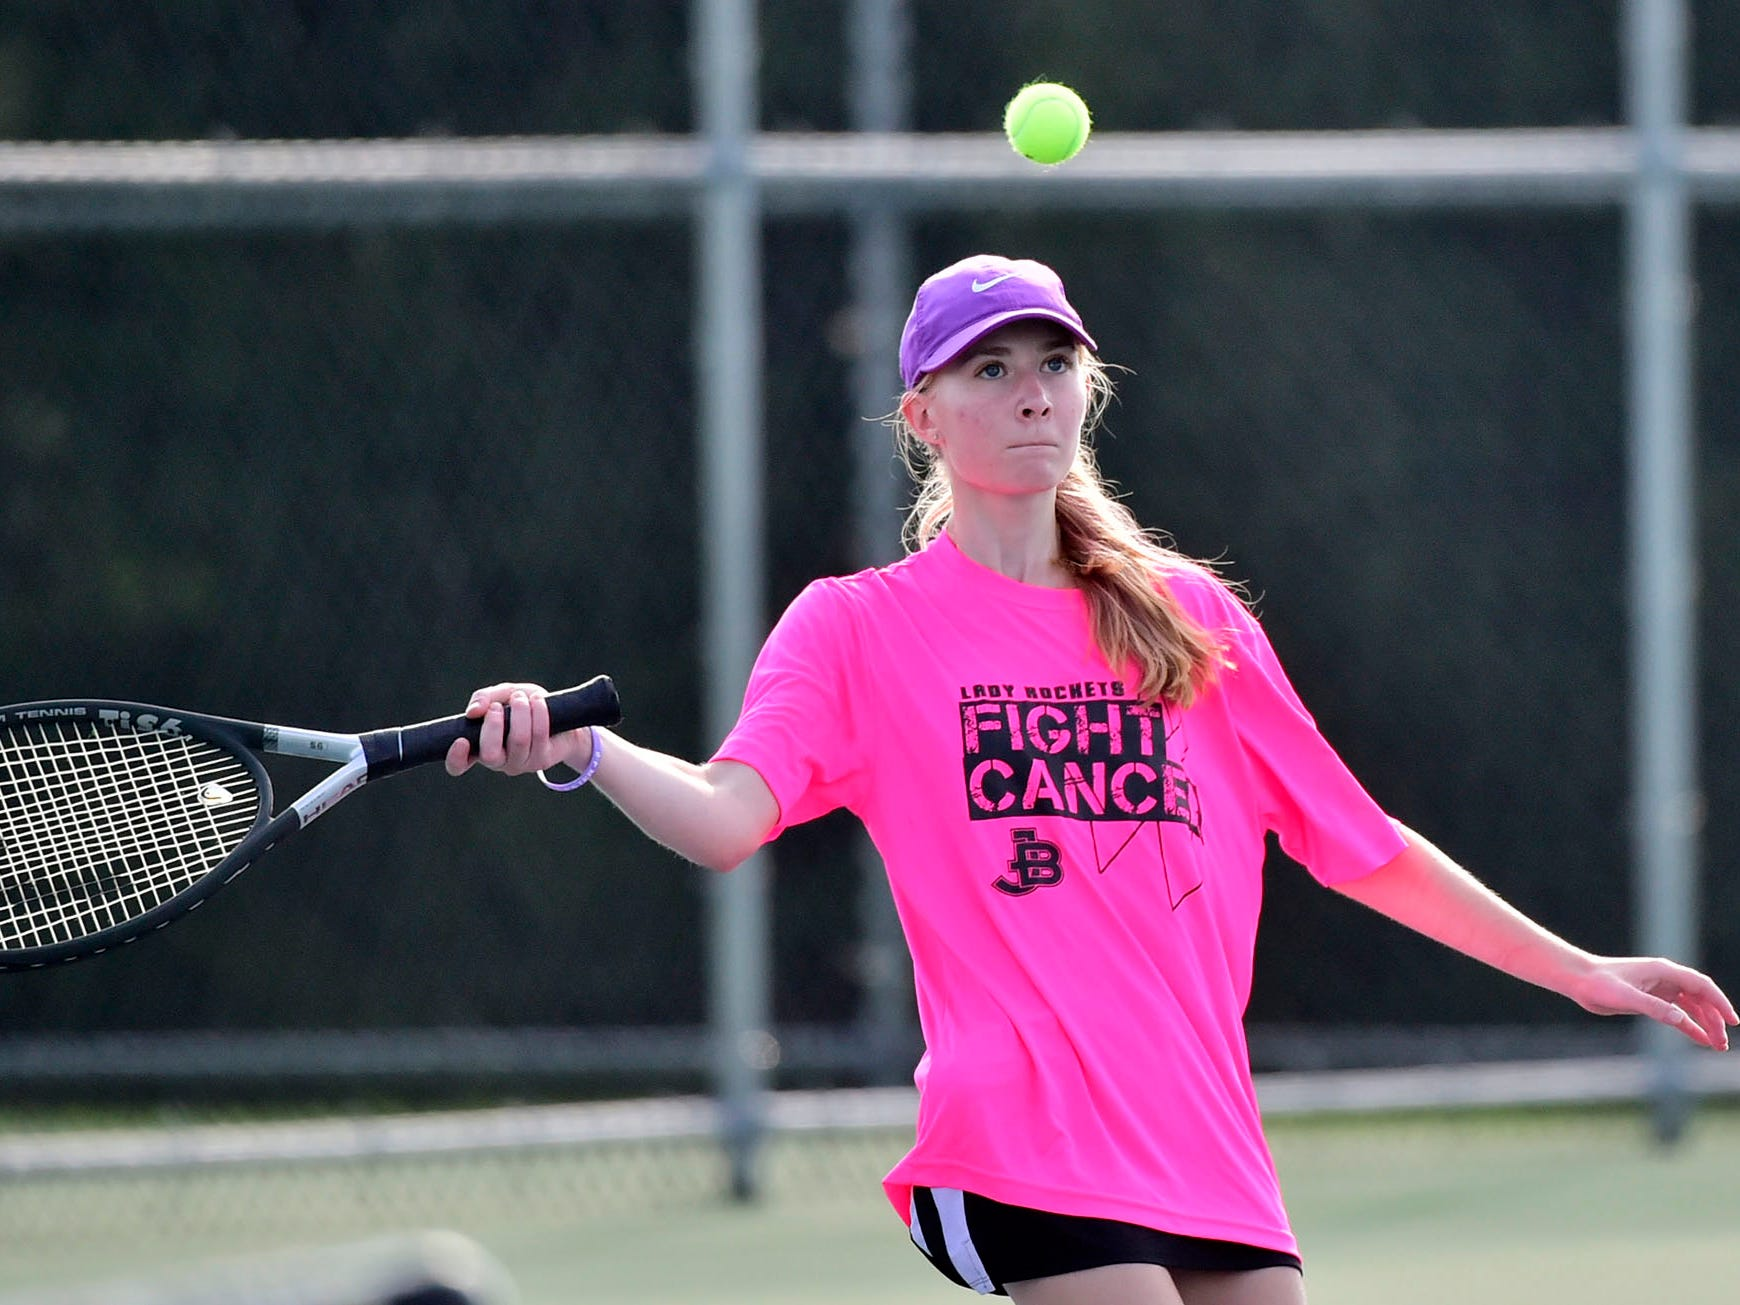 Amber Clark of James Buchanan plays a match against Middletown's Anna Buffington during tennis action Thursday, September 20, 2018.